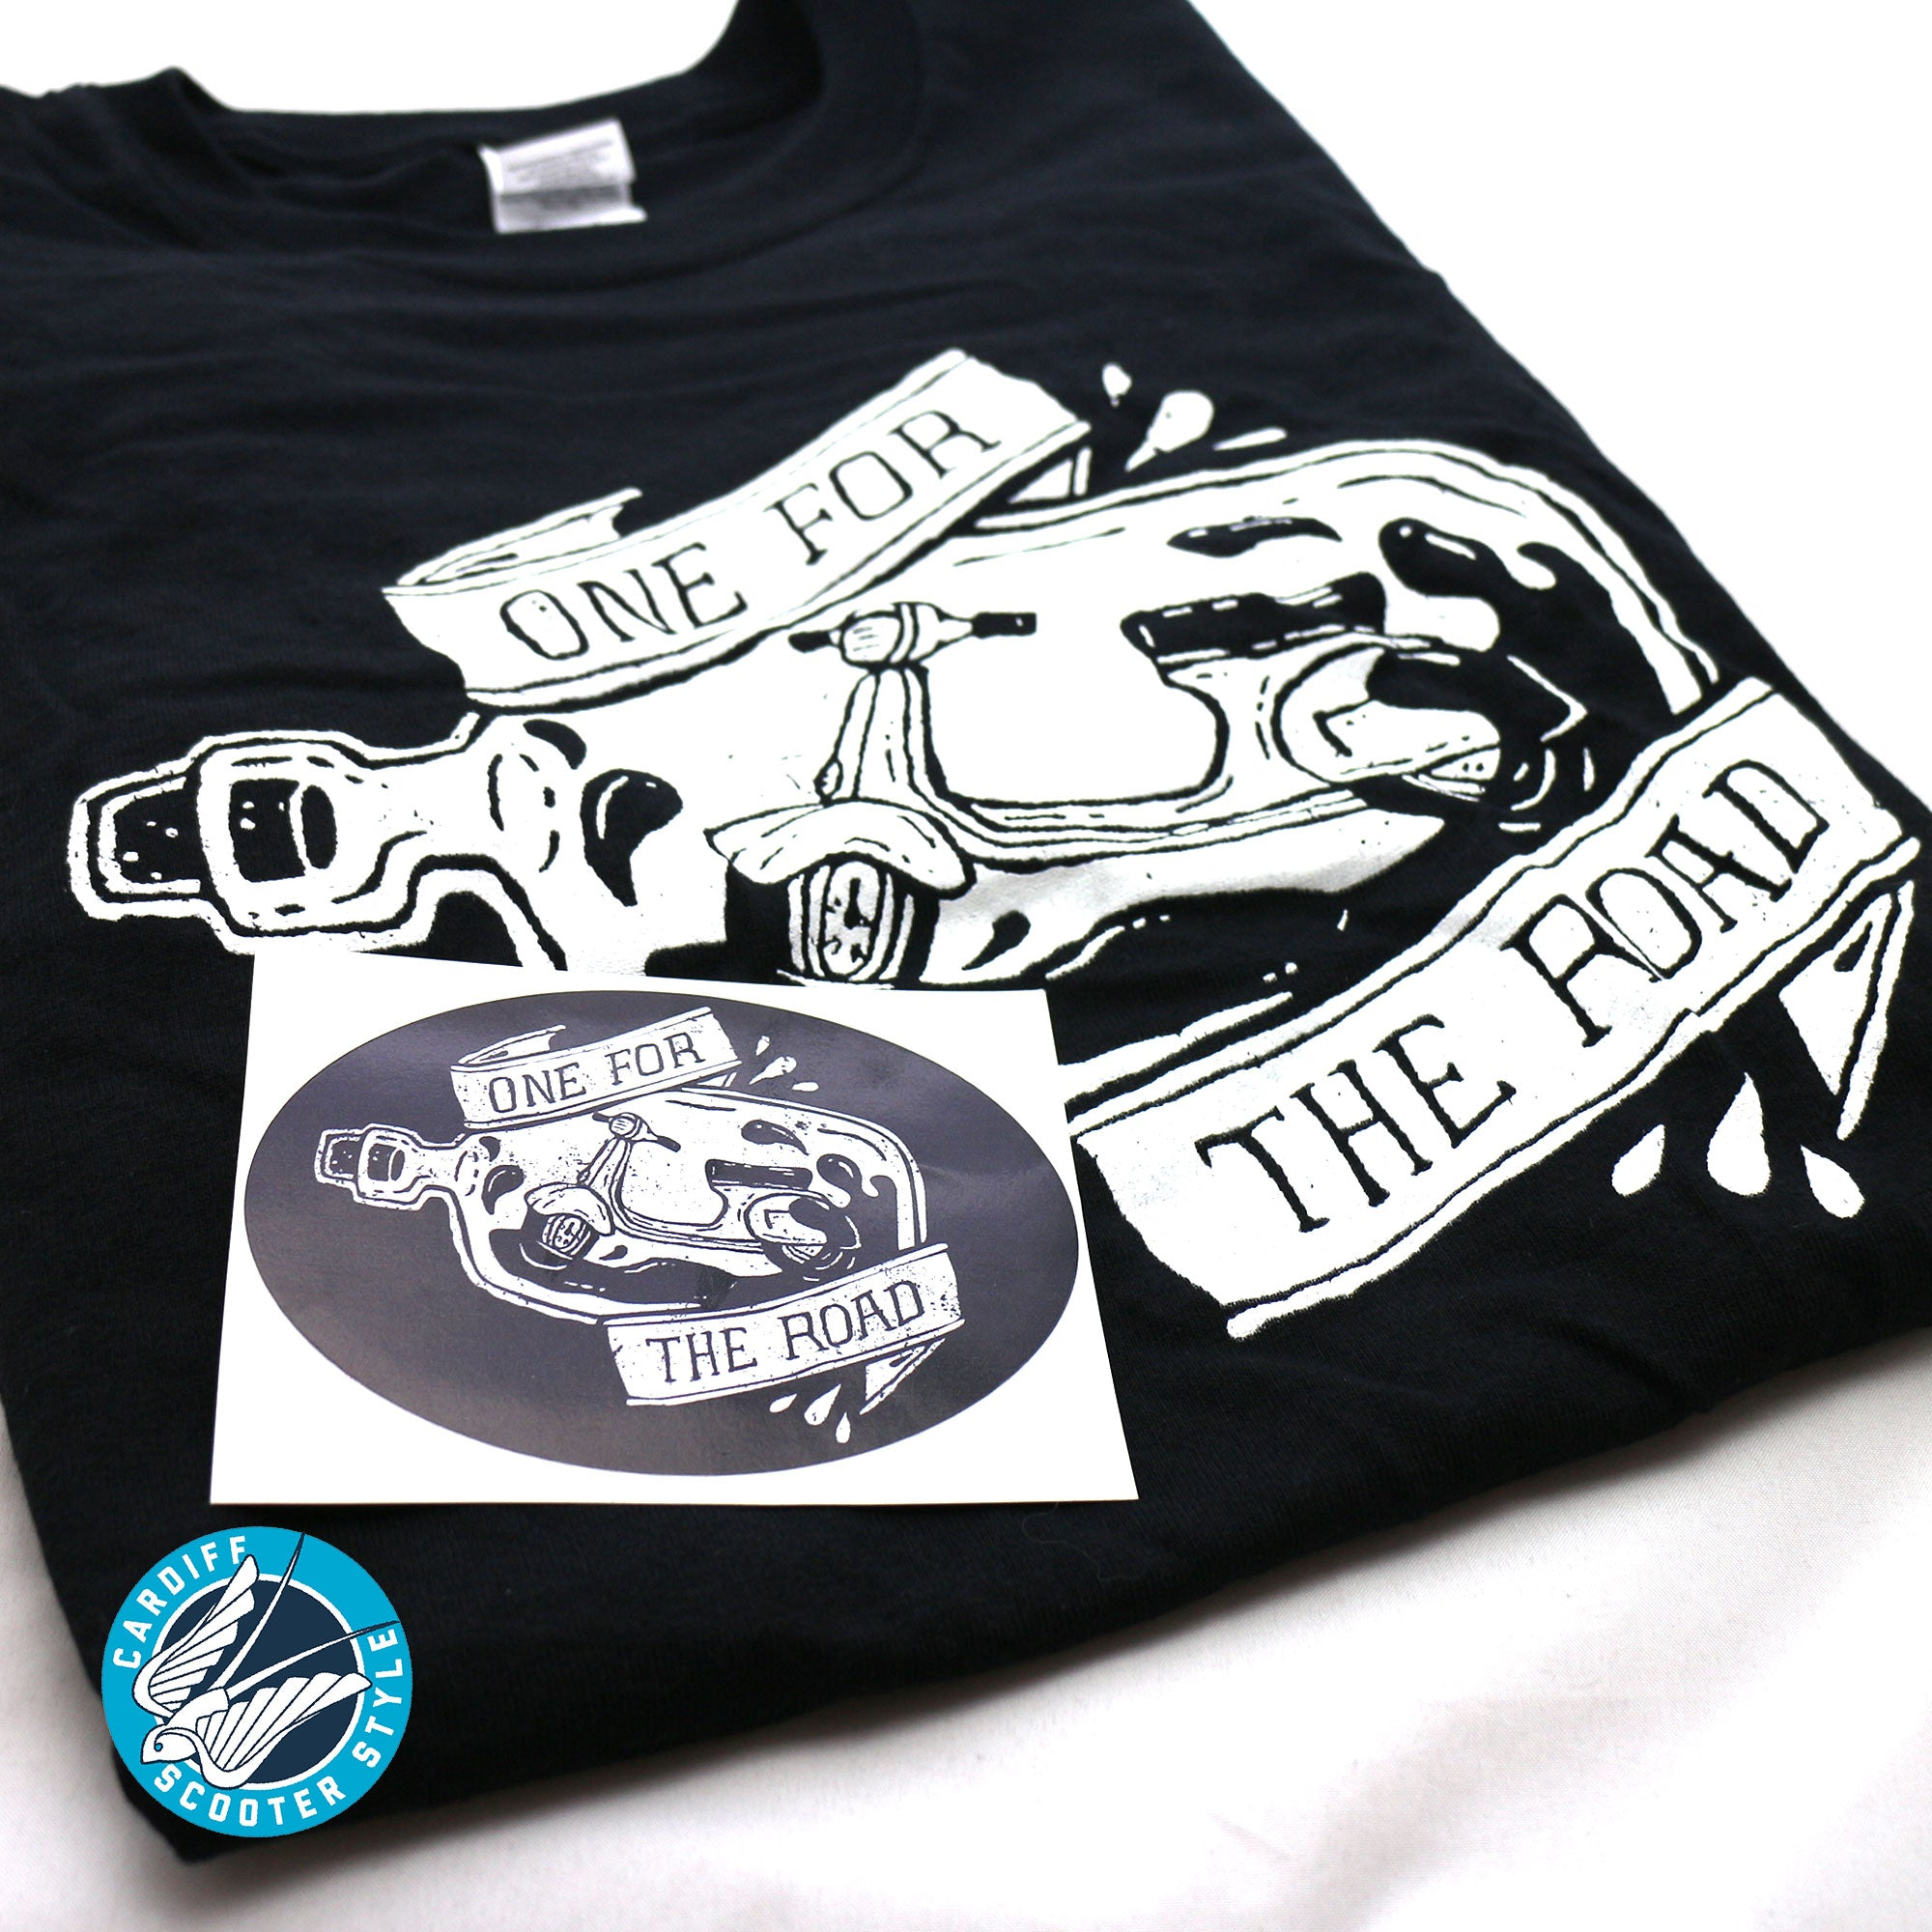 One For The Road' T-Shirt